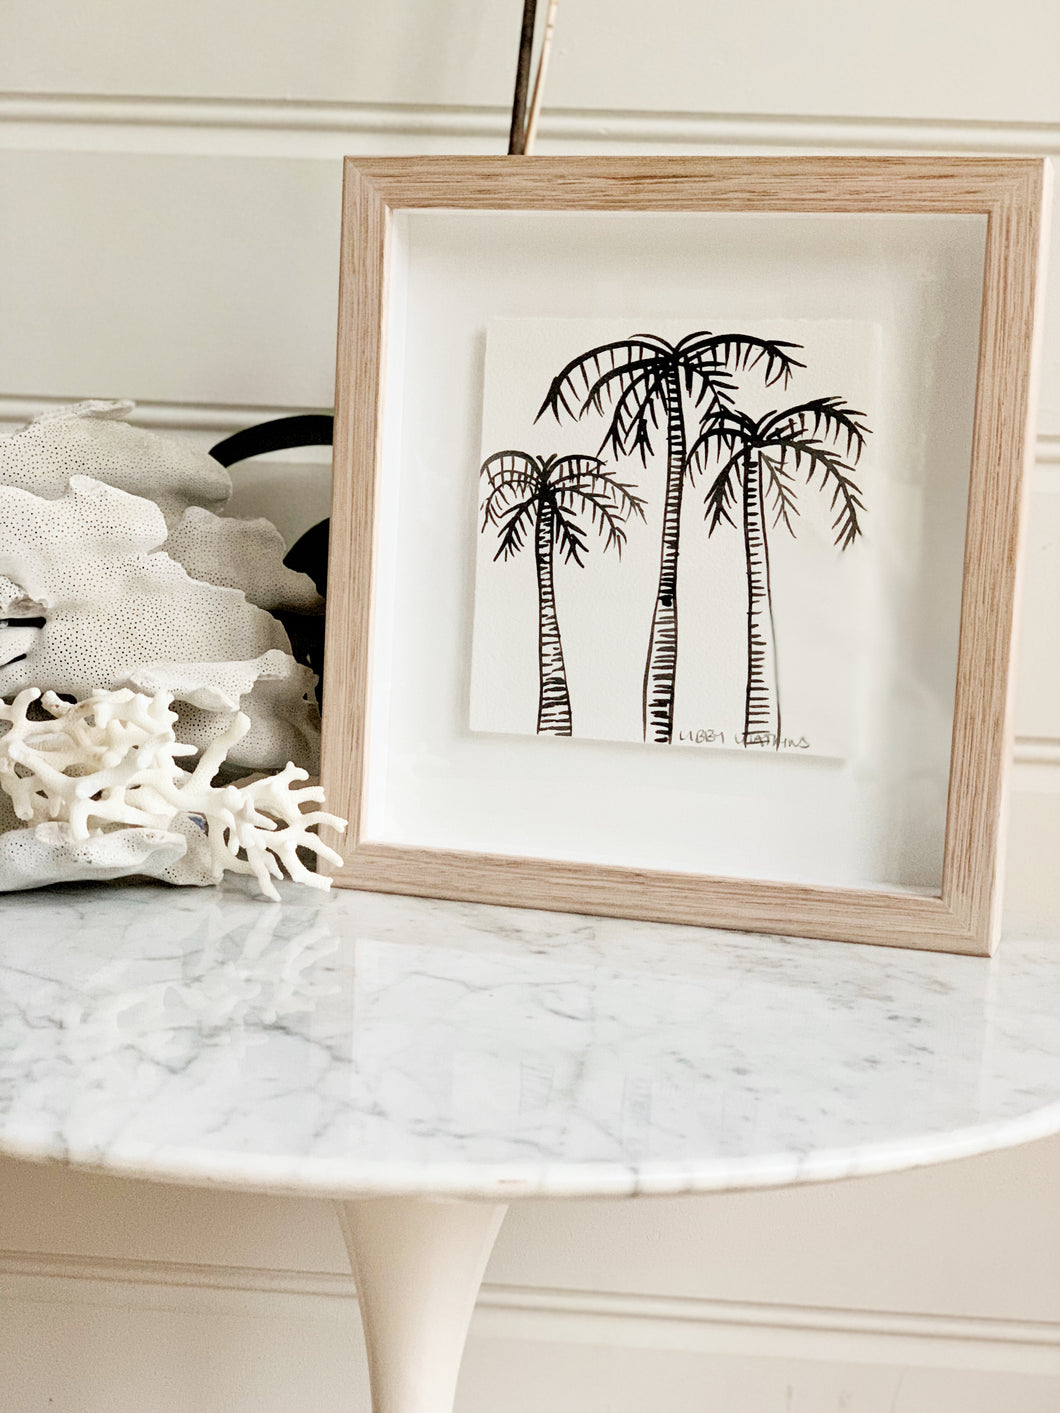 Signature Libby Watkins | Mini Ink Palm | 91804 | Made to order with artist Libby Watkins